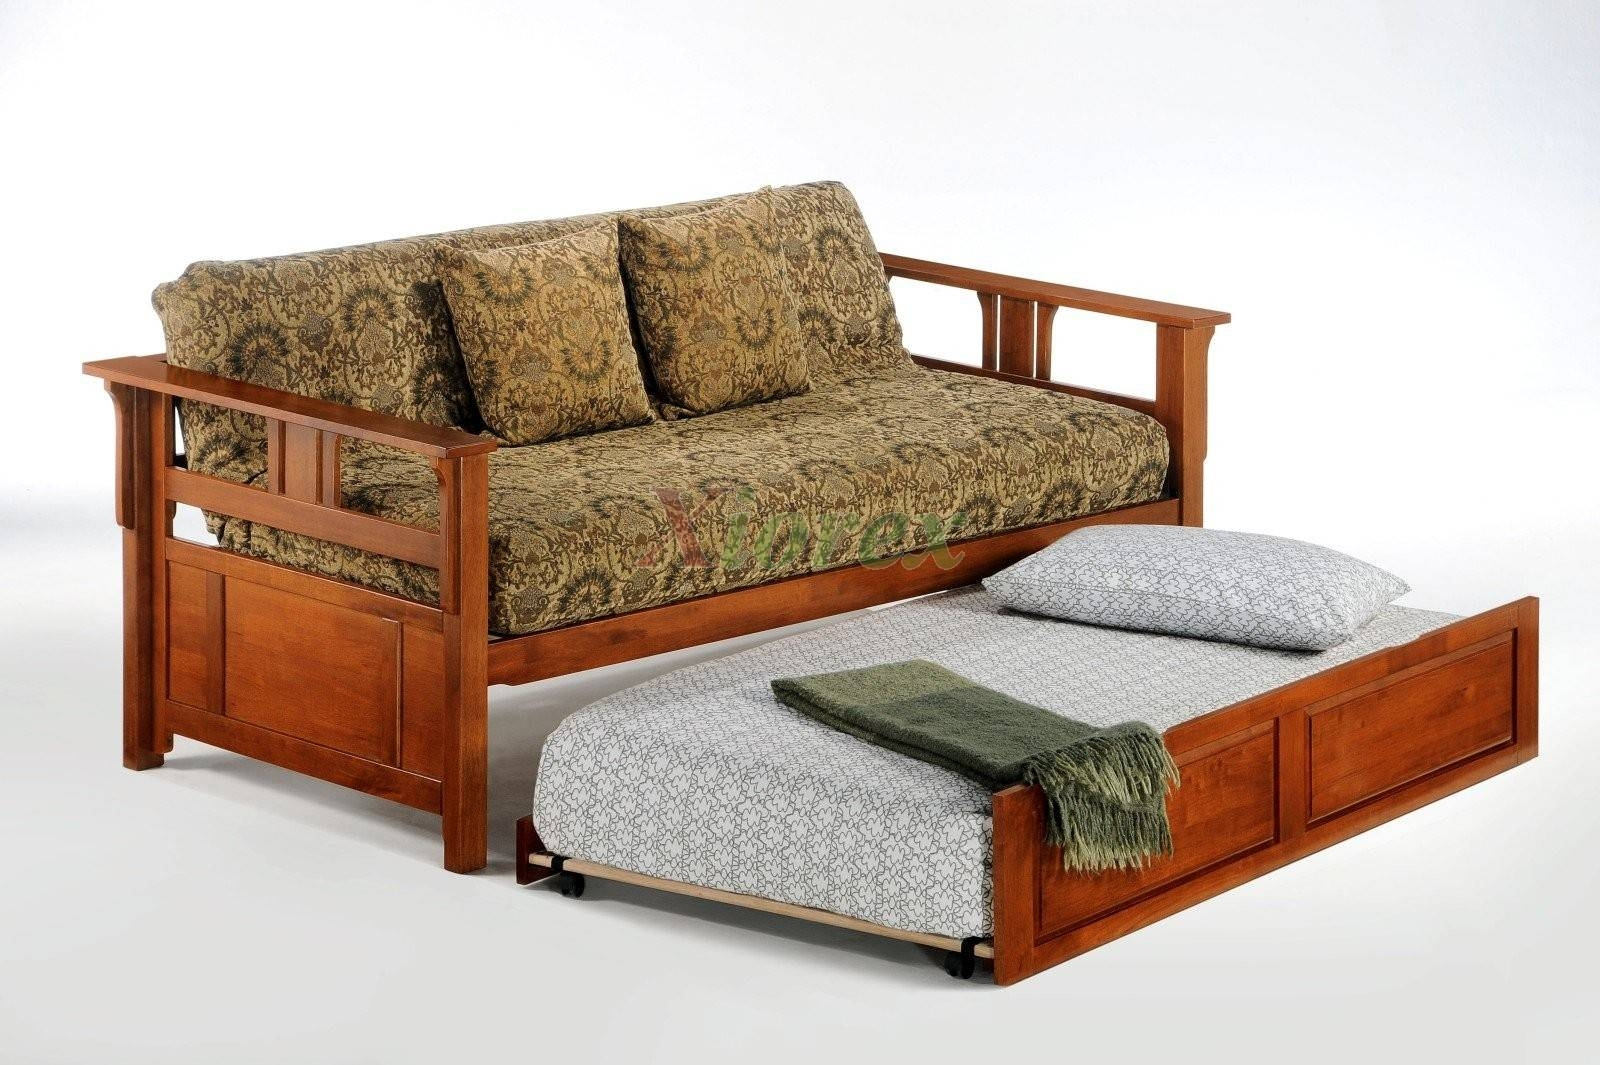 Night And Day Teddy Roosevelt Daybed With Trundle Guest Bed | Xiorex in Sofas With Trundle (Image 7 of 15)